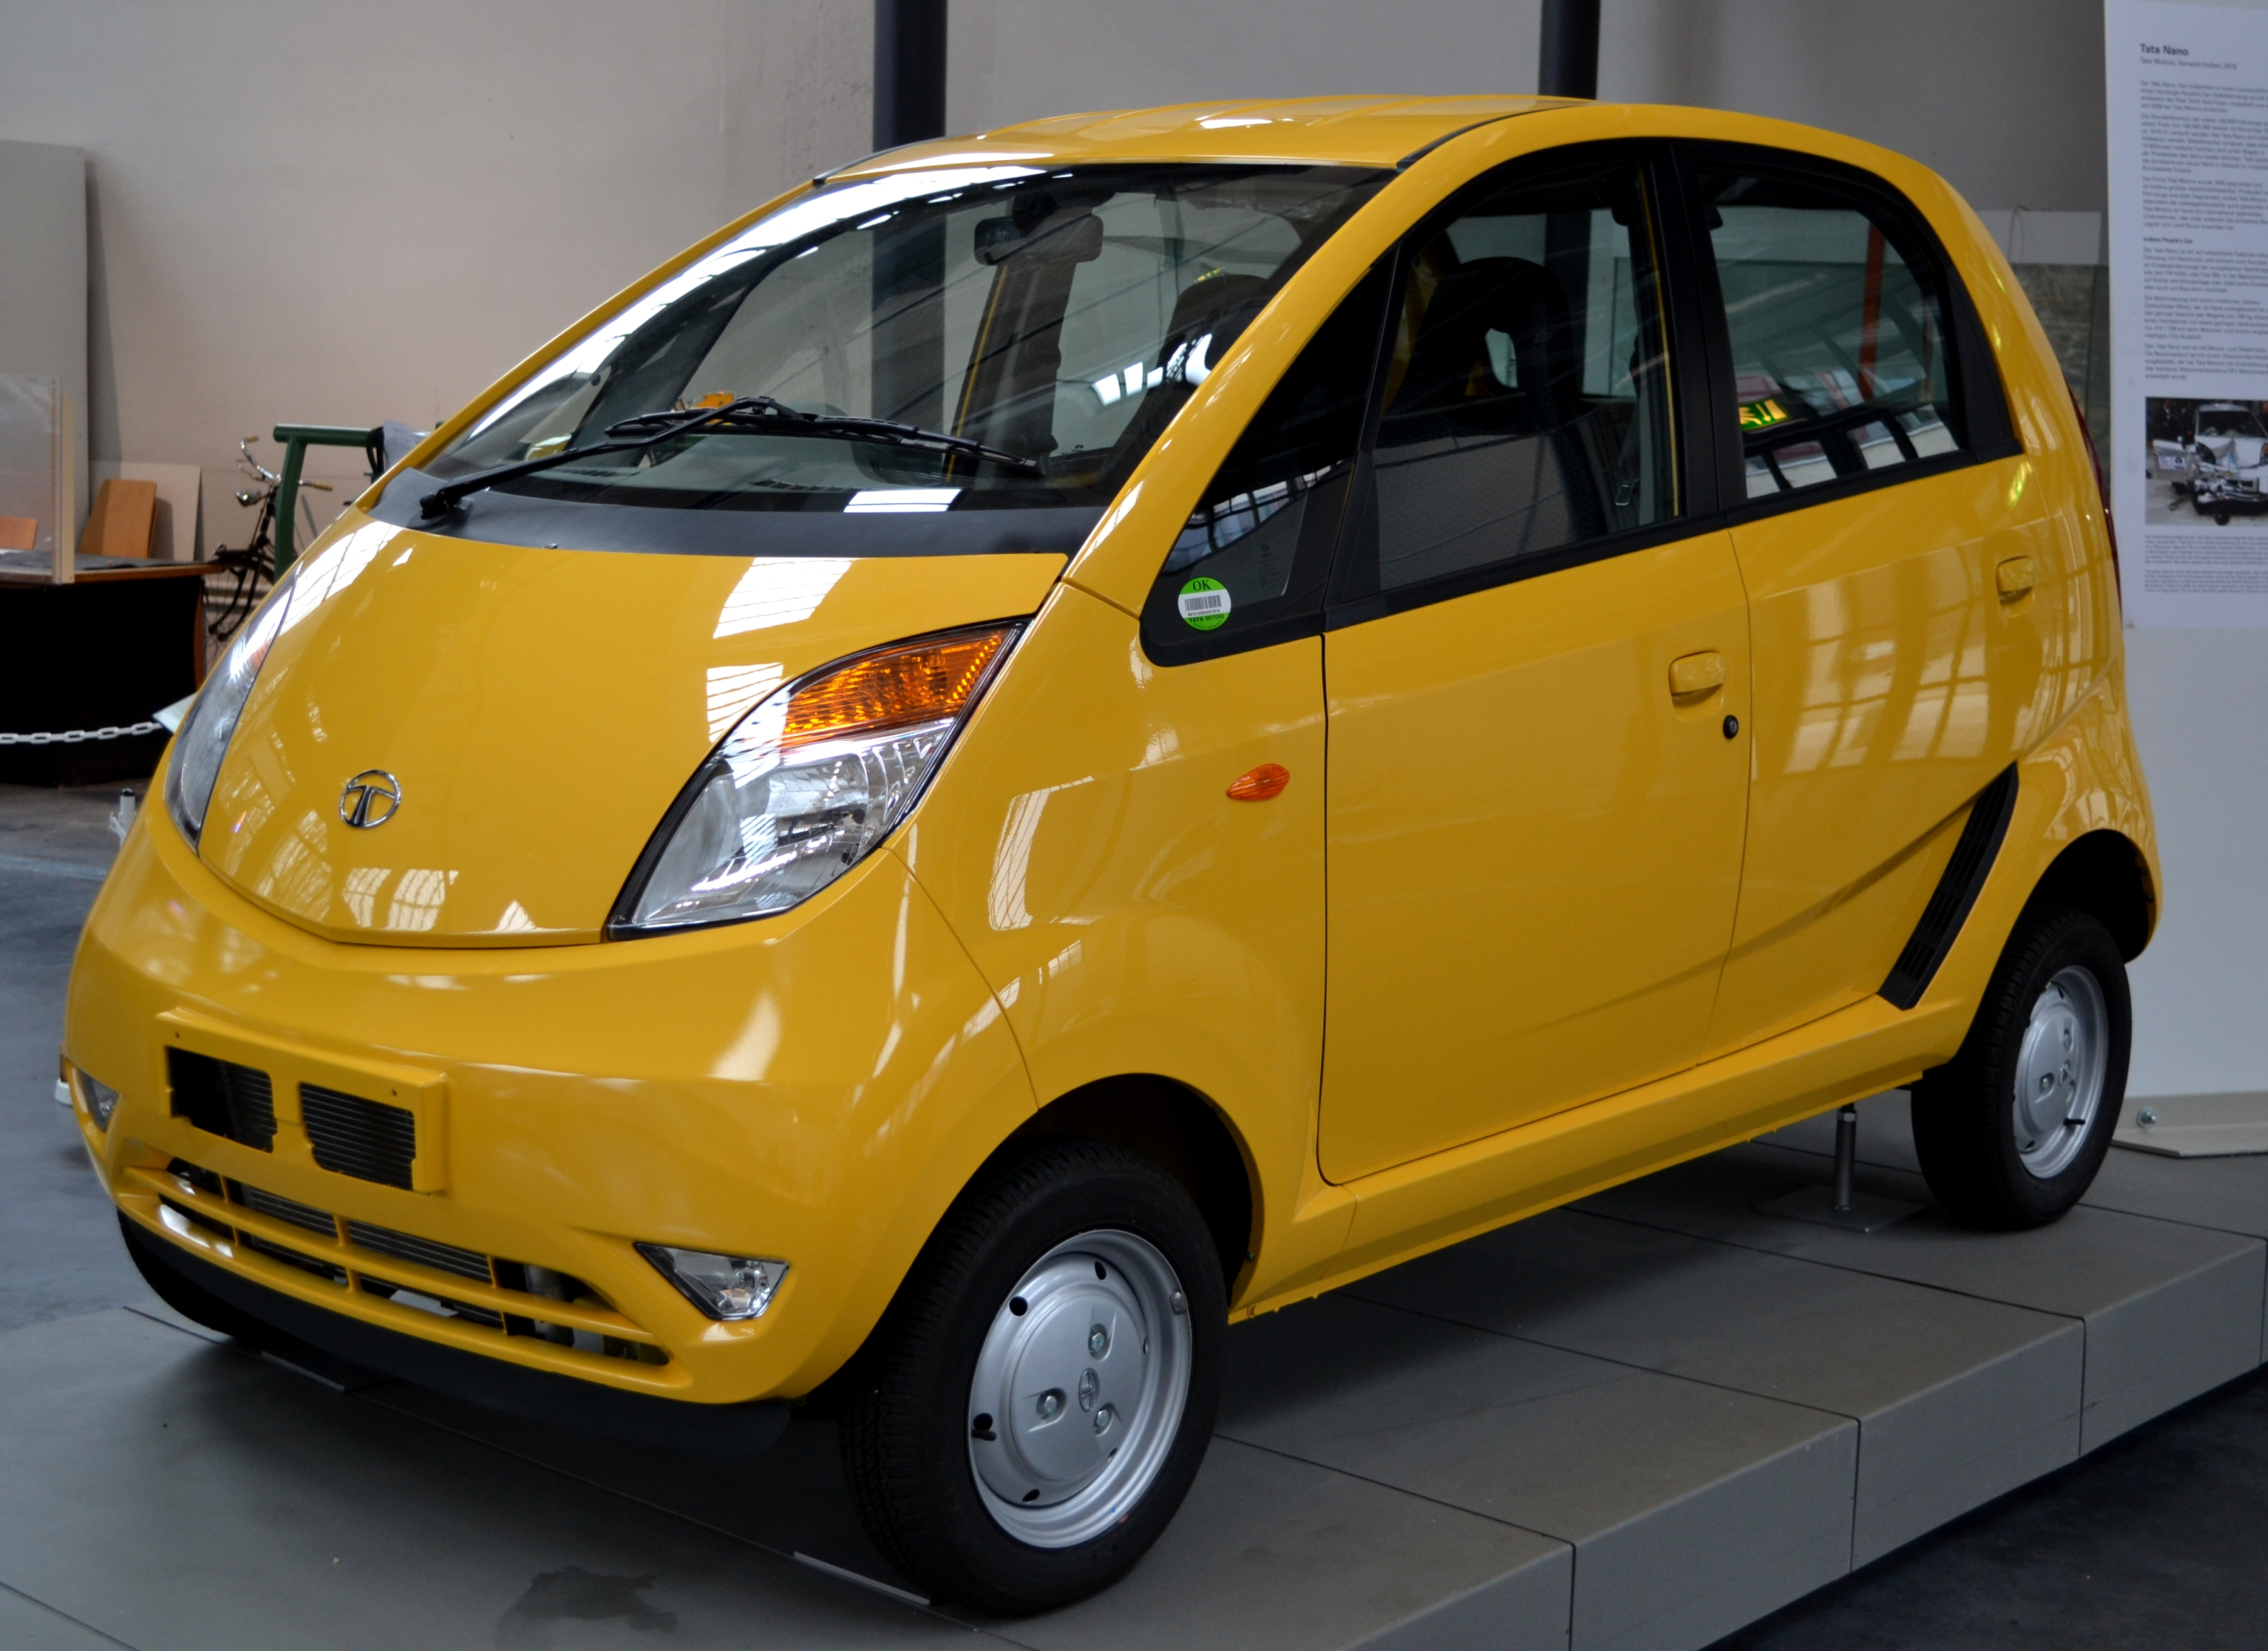 Tata Nano Taxi to Trigger Price War